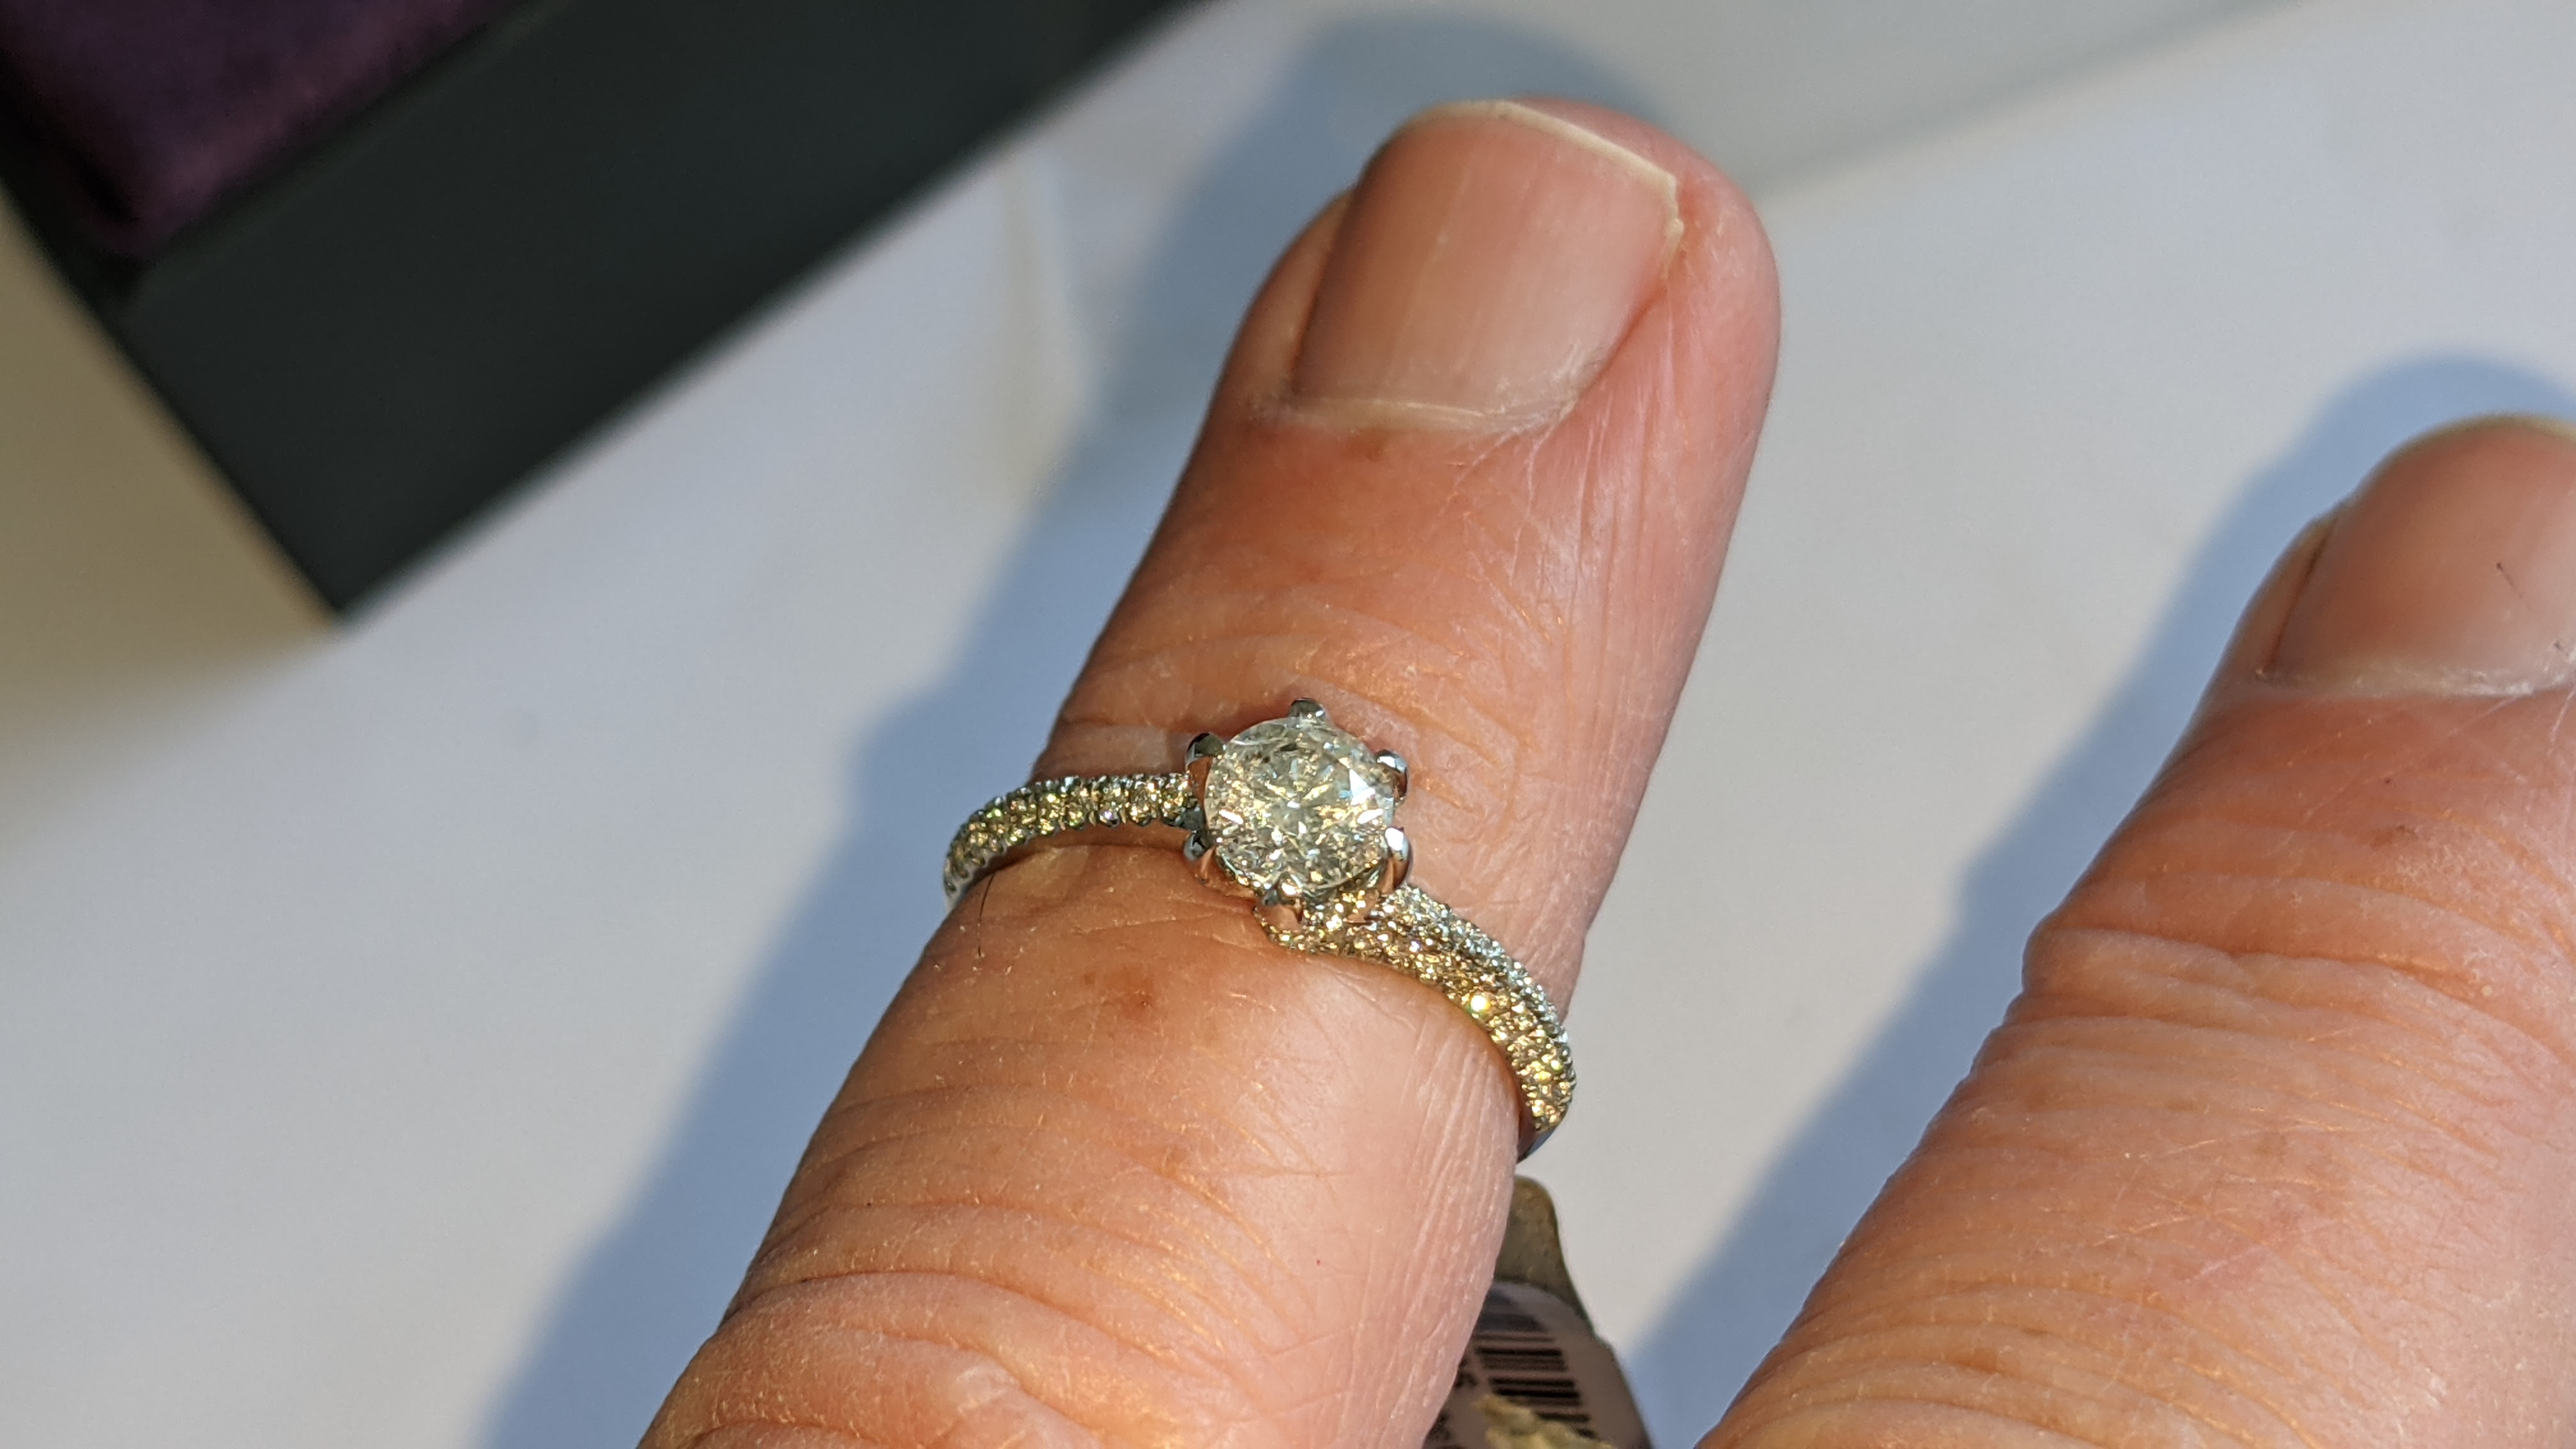 Platinum 950 diamond ring with 0.55ct central stone & 0.348ct of smaller stones on the shoulders. RR - Image 12 of 16